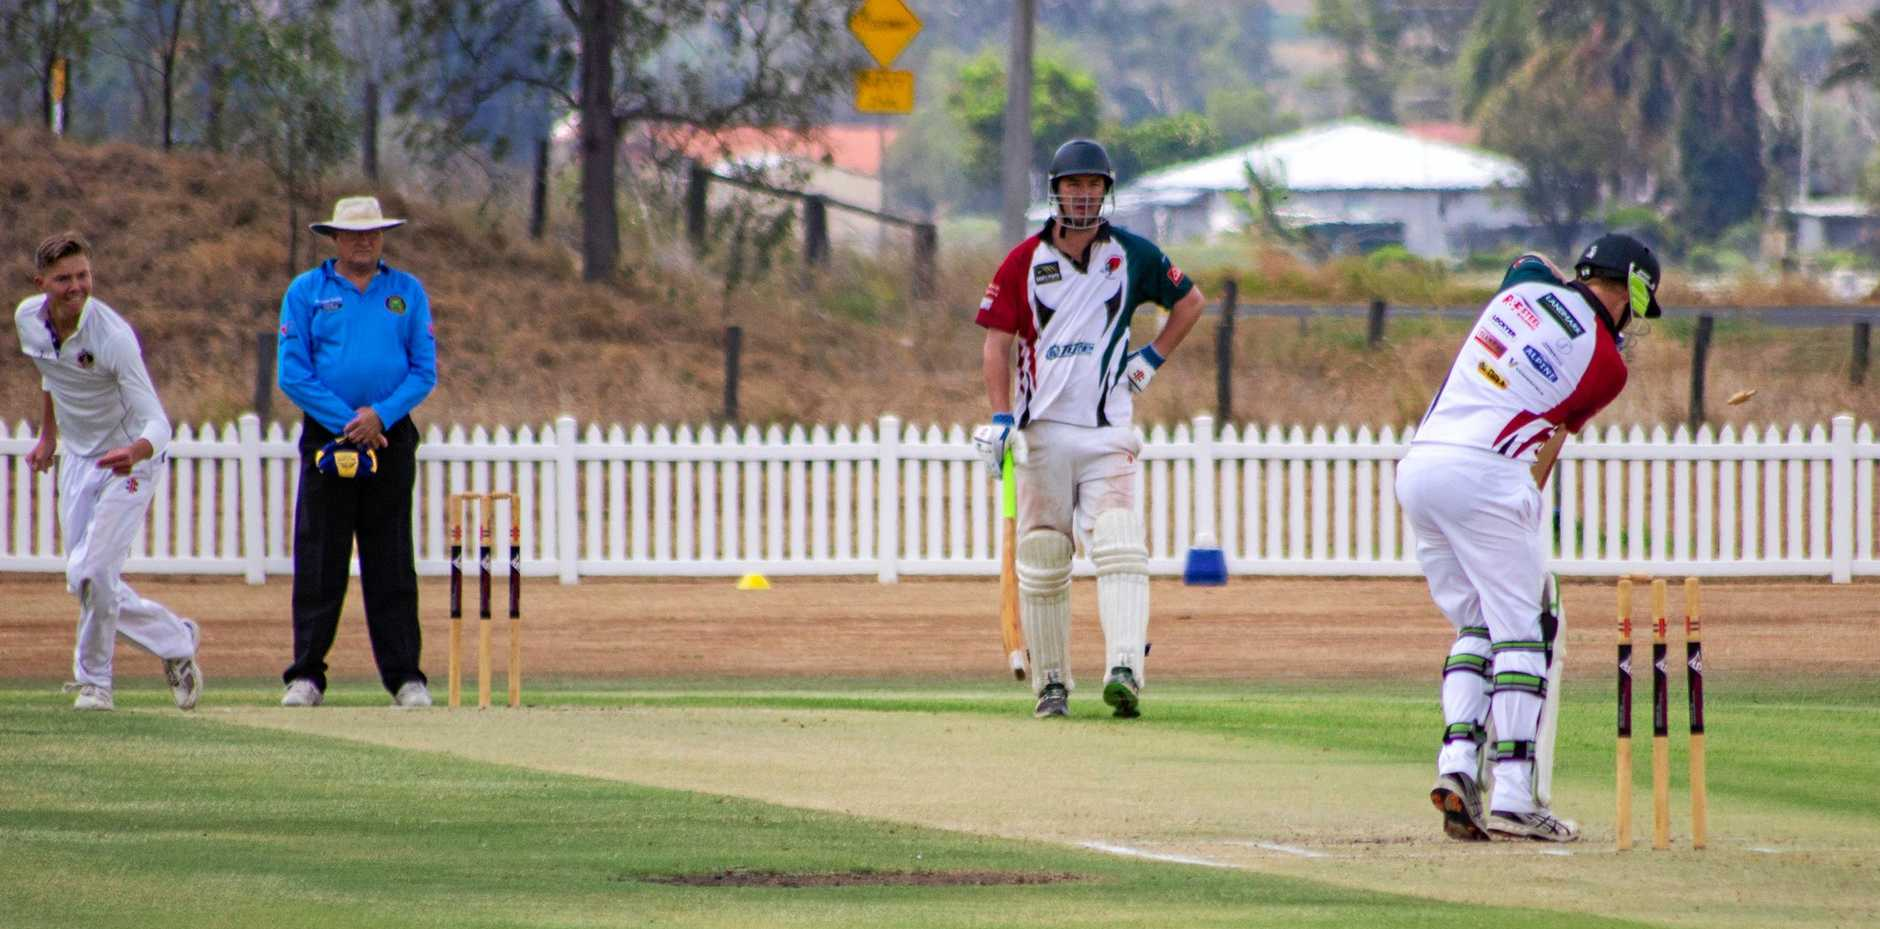 OUT: Glenore Grove dismisses a Southern Lockyer batsman at Ropehill Cricket Ground.